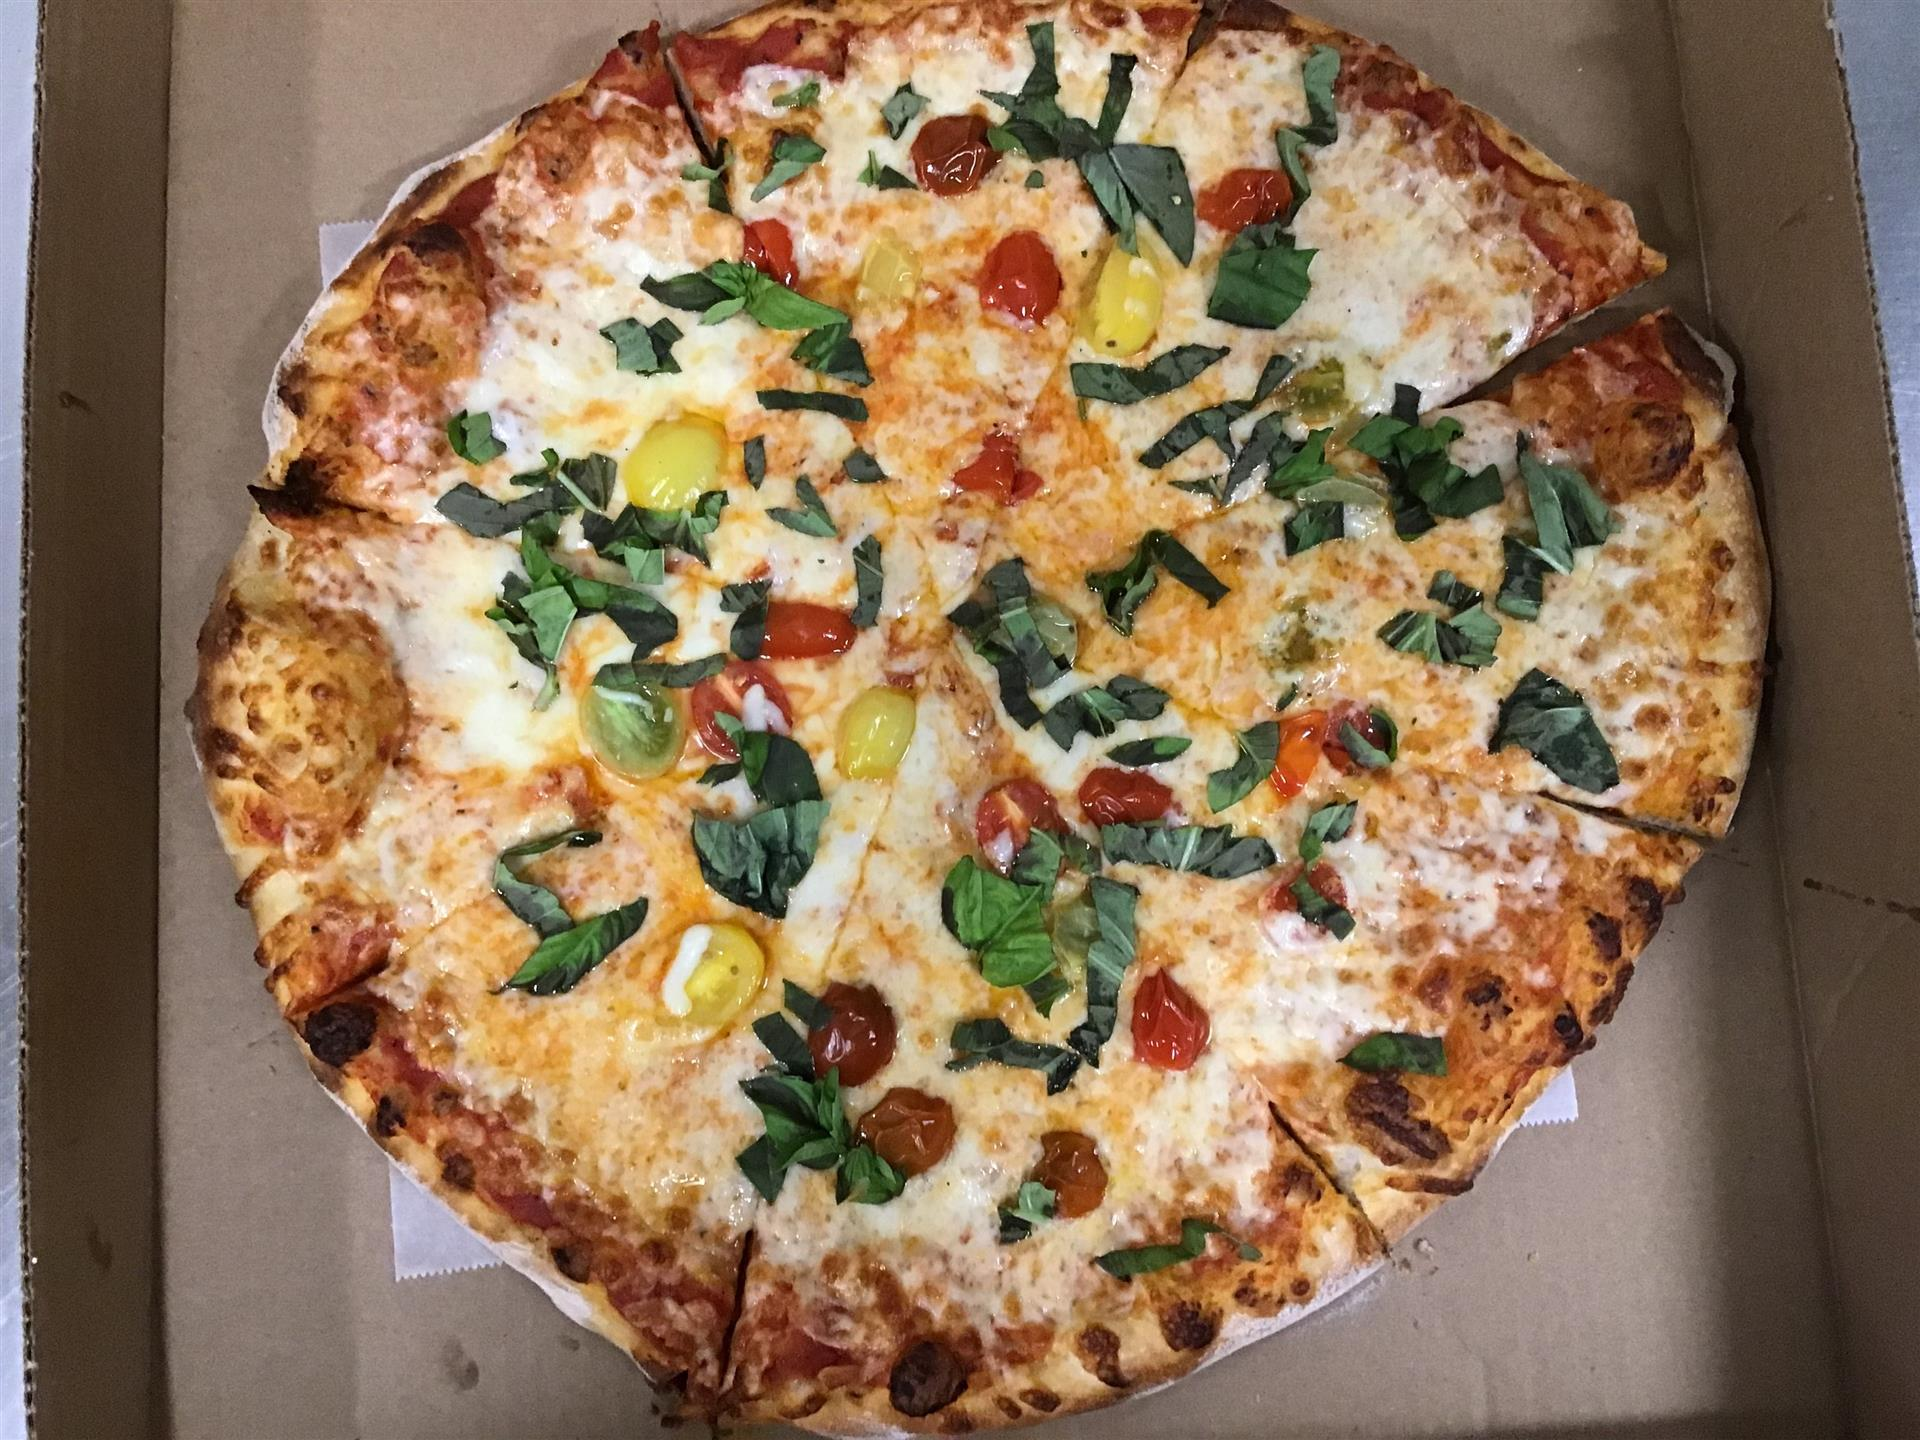 pizza with cheese and various vegetable toppings